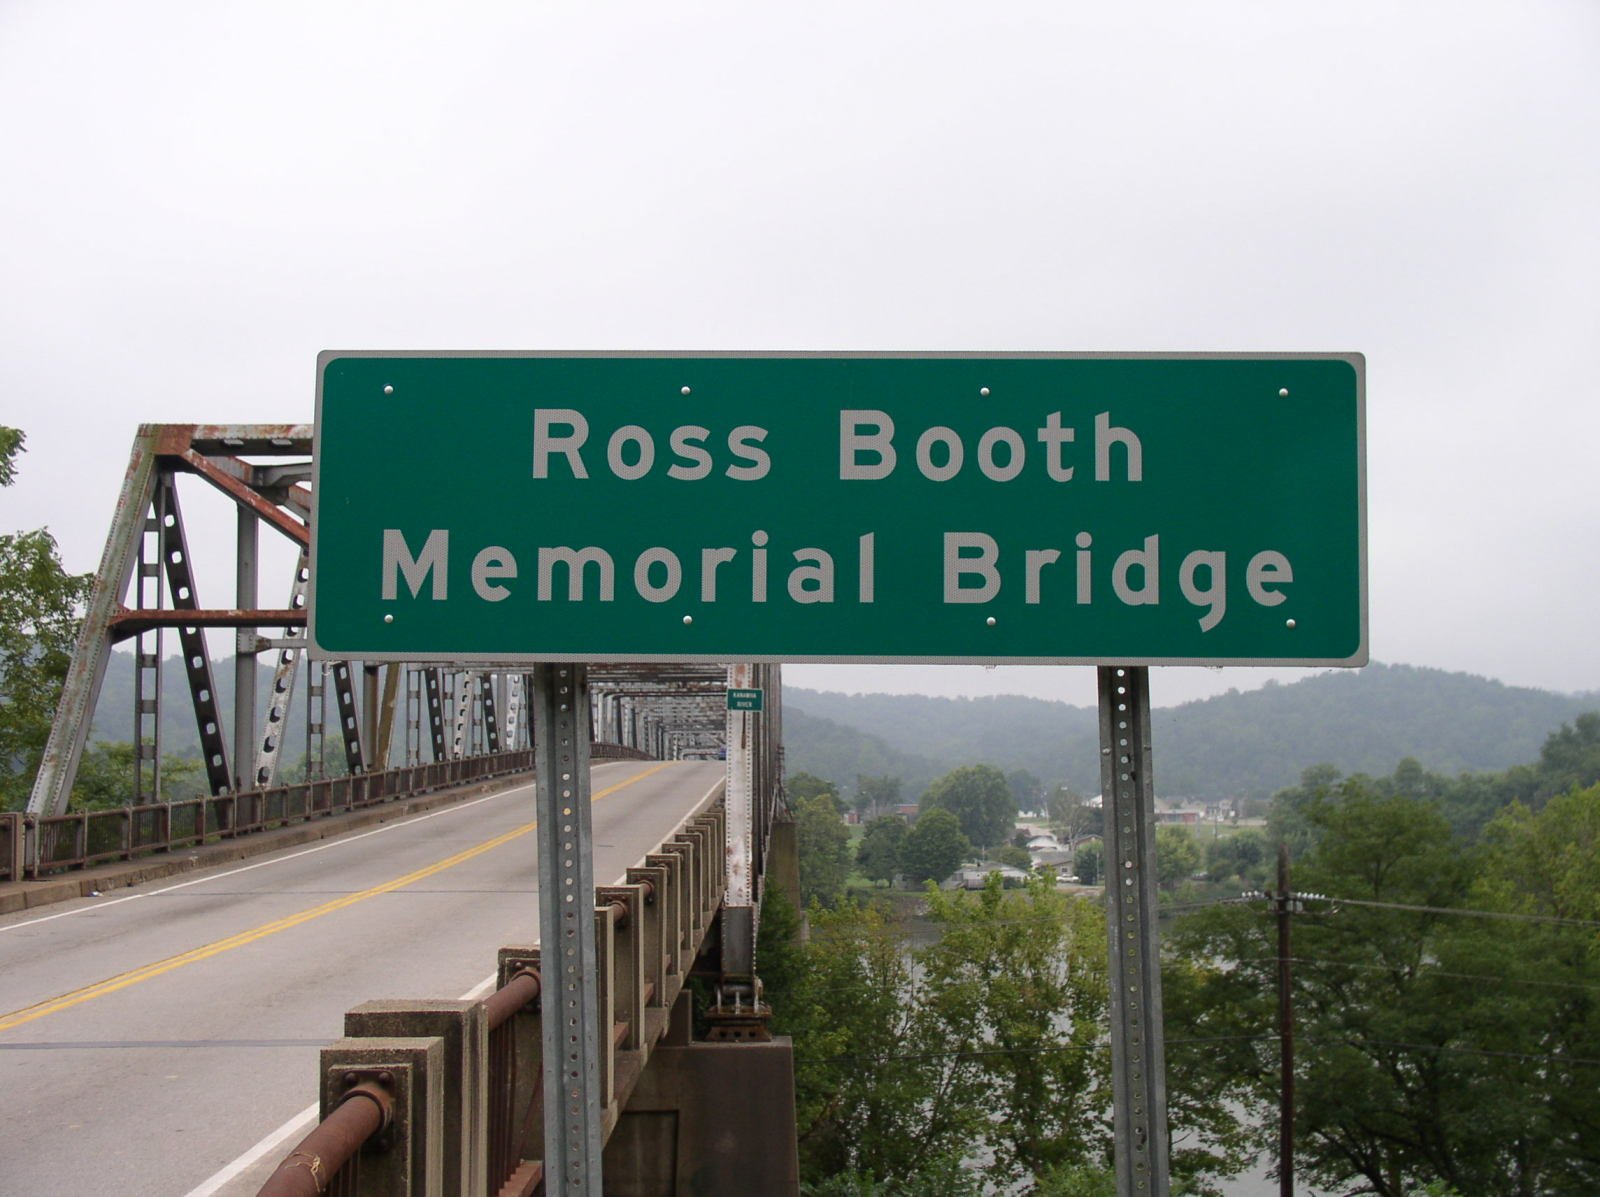 The Winfield Toll Bridge is also known as the Ross Booth Memorial Bridge.